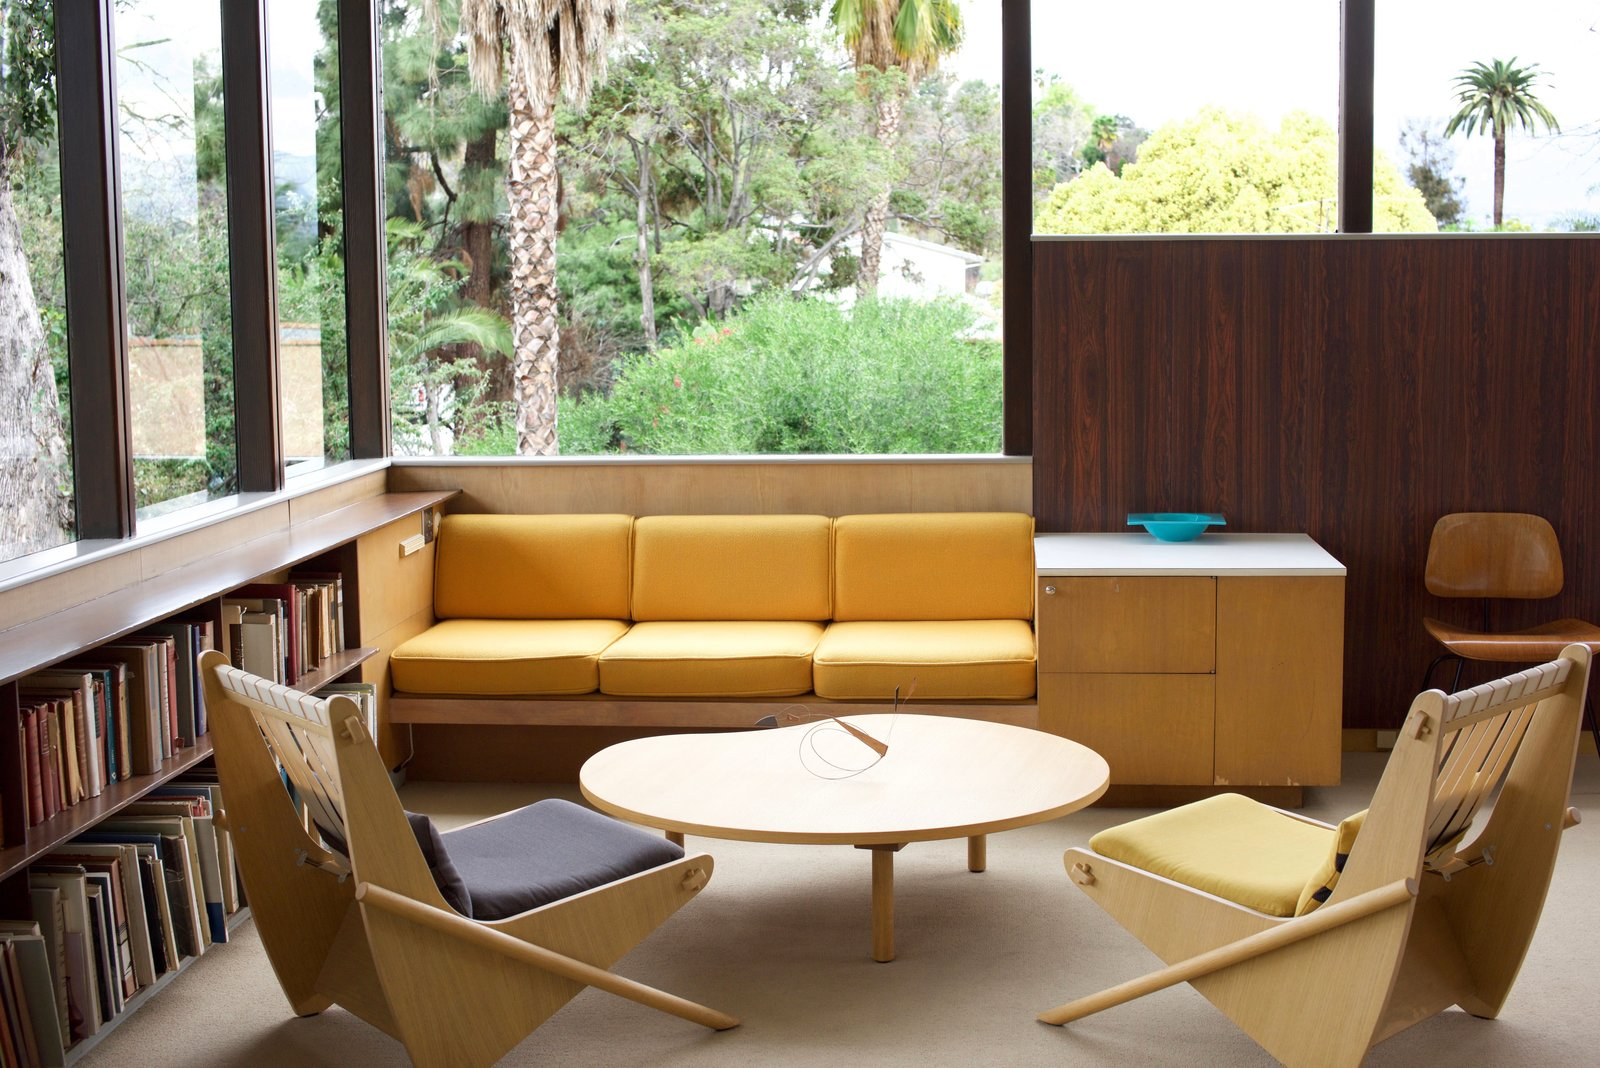 Photo 1 of 11 in Iconic Perspectives: Richard Neutra's VDL Studio & Residences